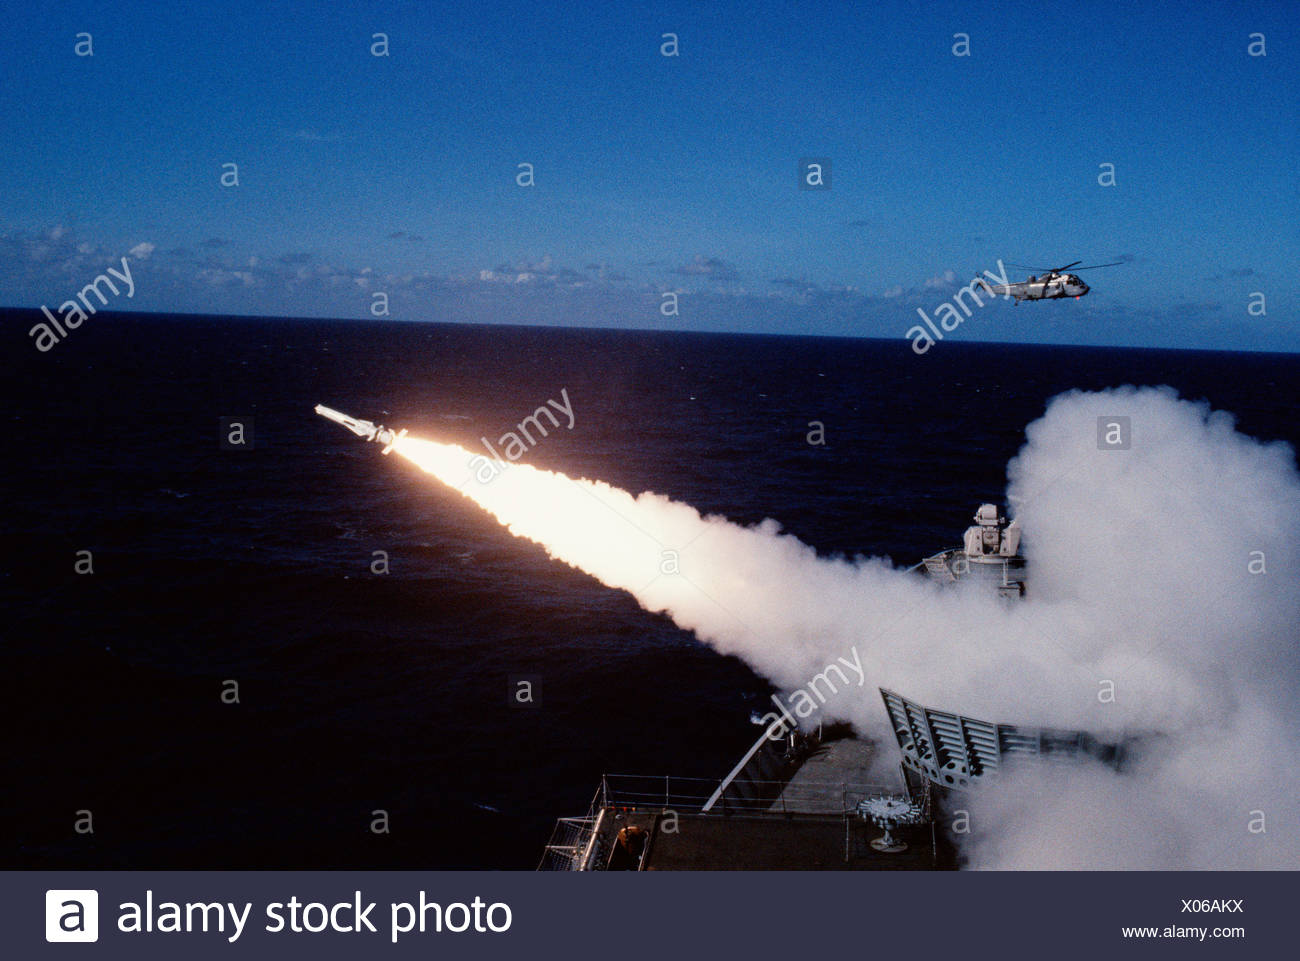 British Navy warship missile launch. - Stock Image